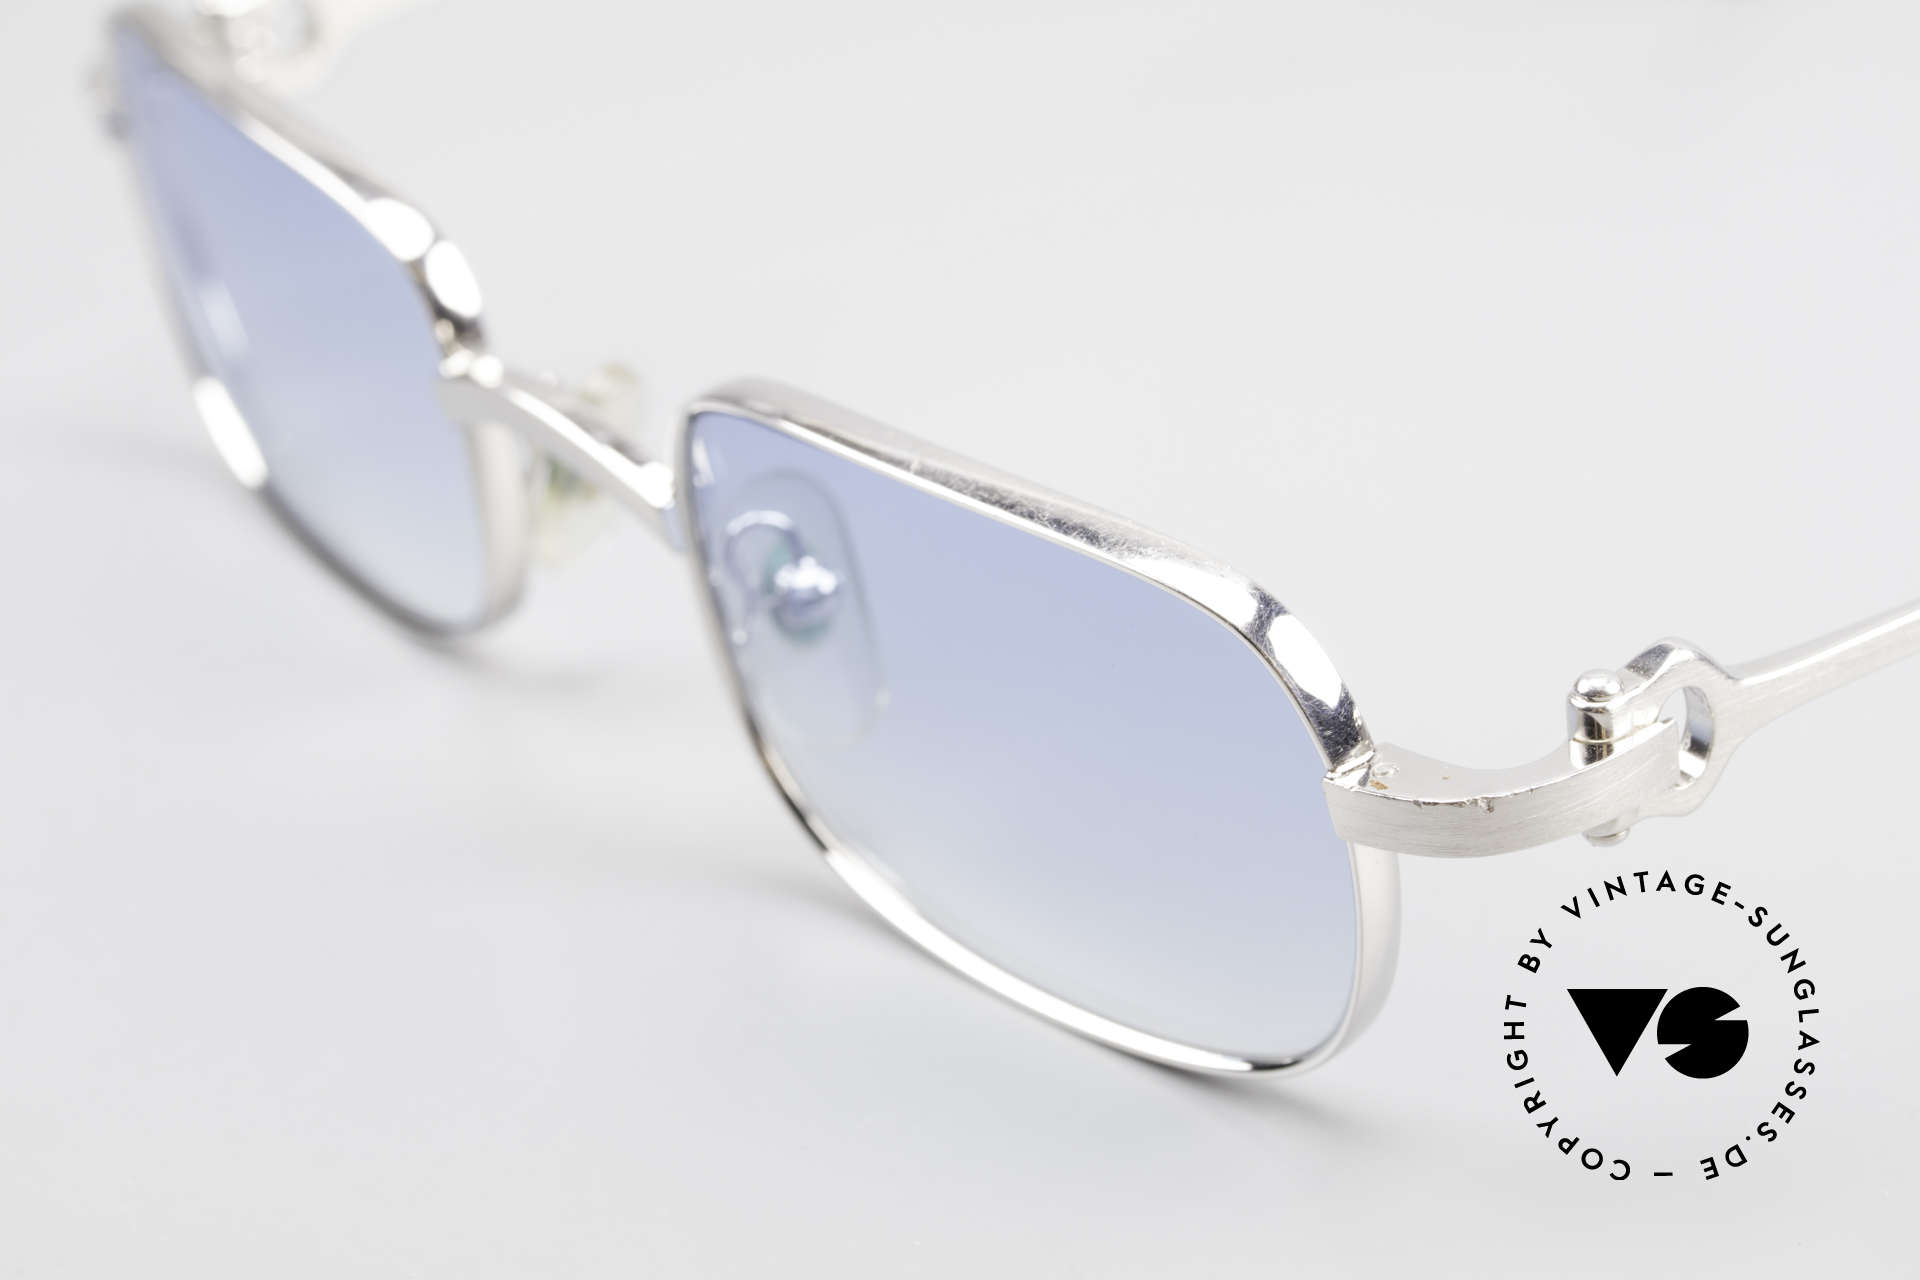 Cartier Dreamer Luxury Frame With Chanel Case, light blue-gradient lenses (also wearable at night), Made for Men